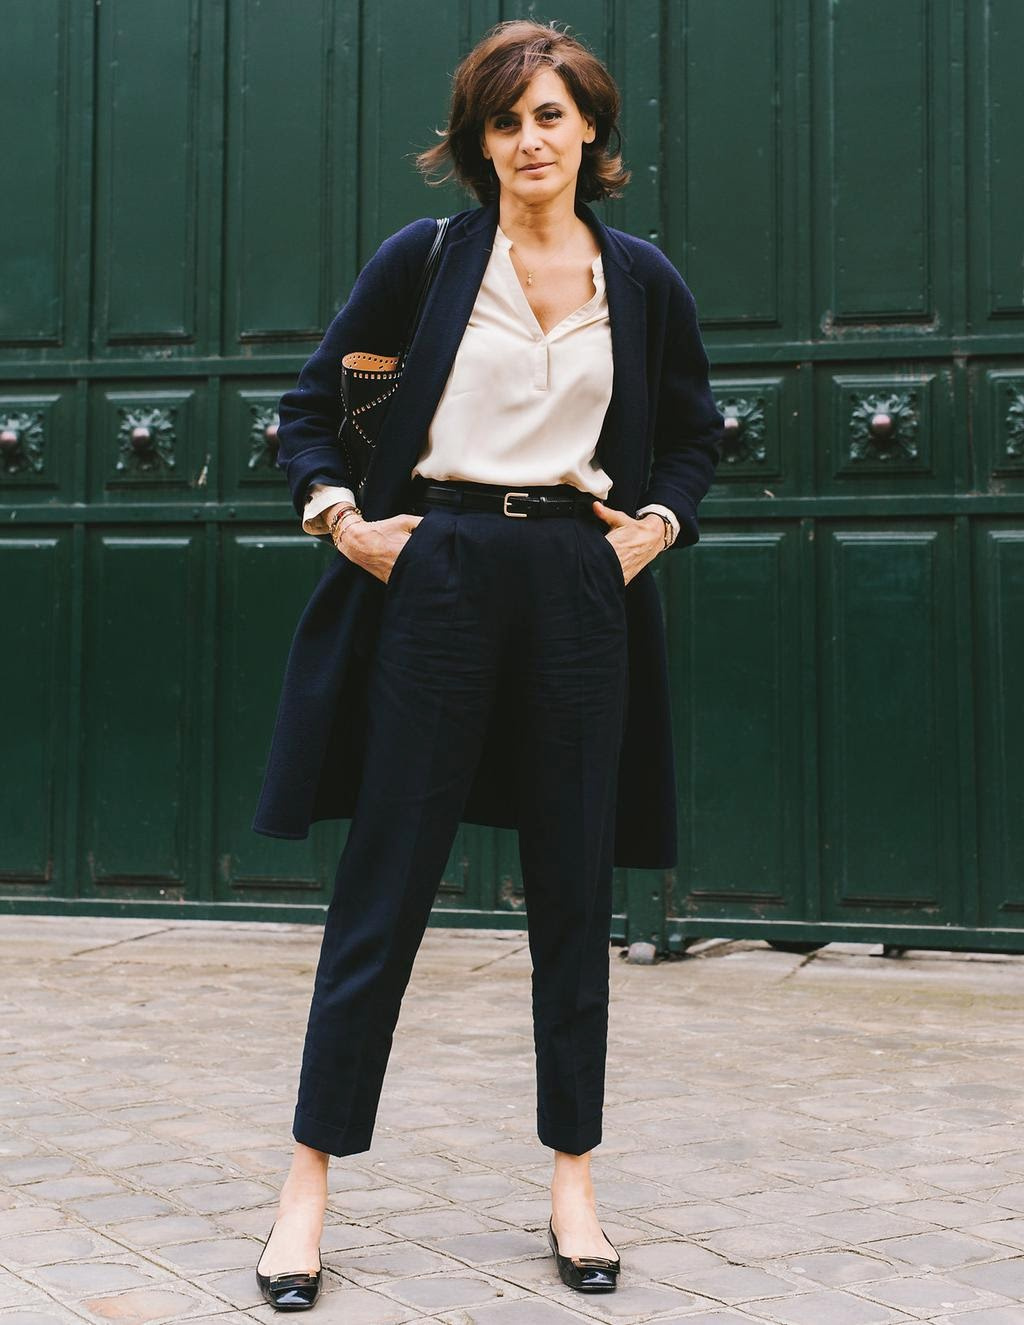 Parisian Uniform Dressing A La Ines De La Fressange That